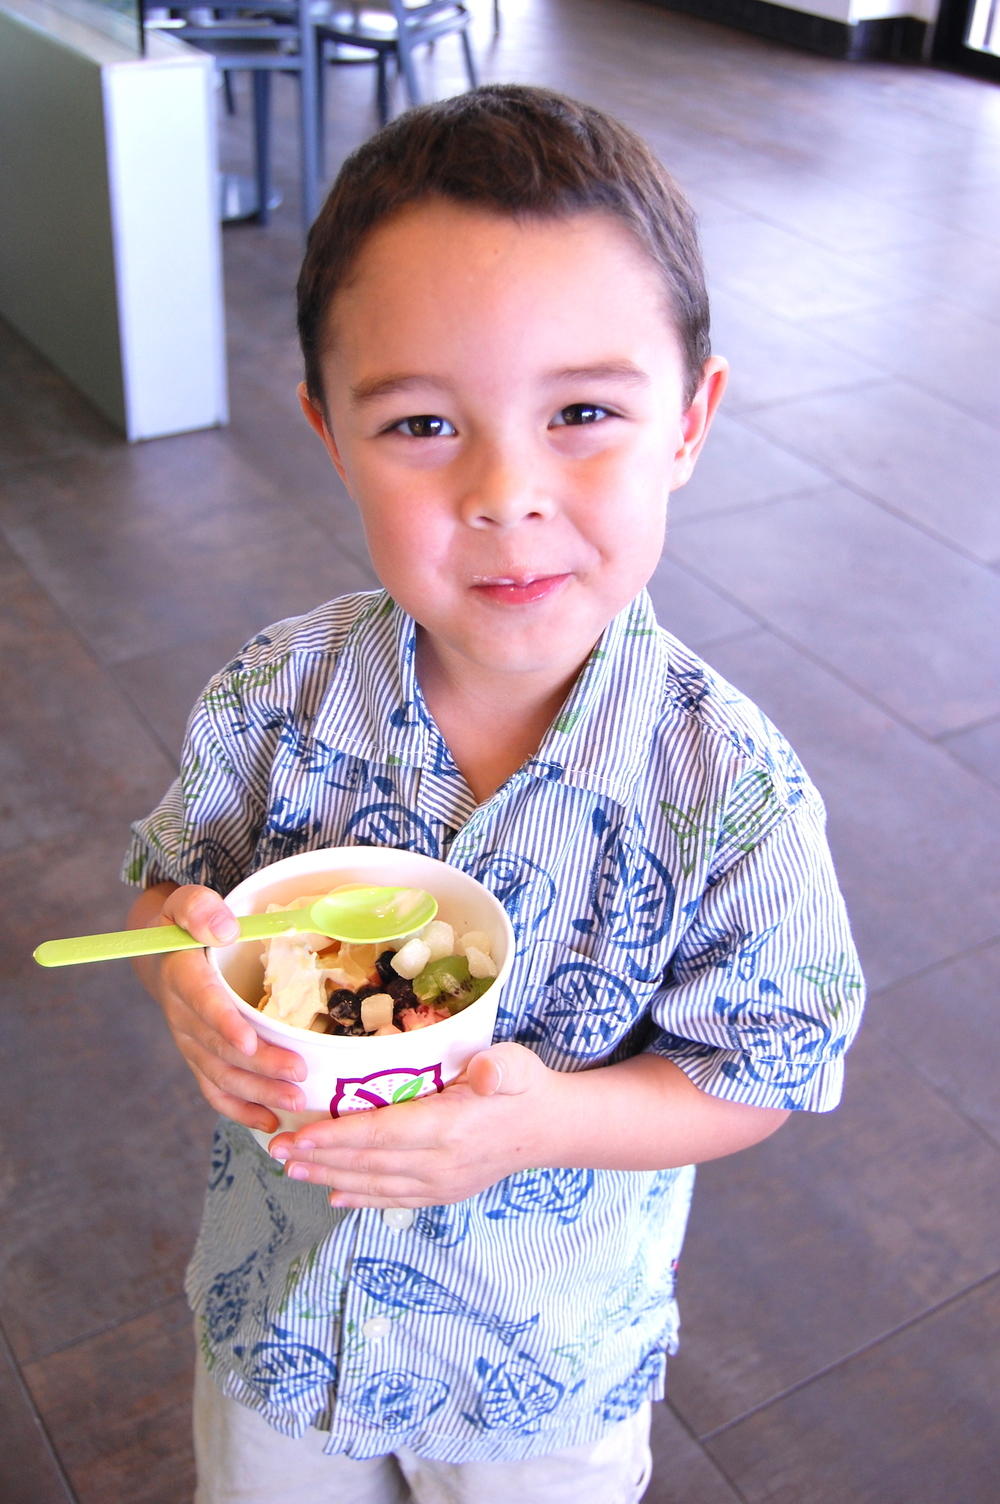 Abraham smiles as he enjoys eating his dessert from Guam's Yogurtland